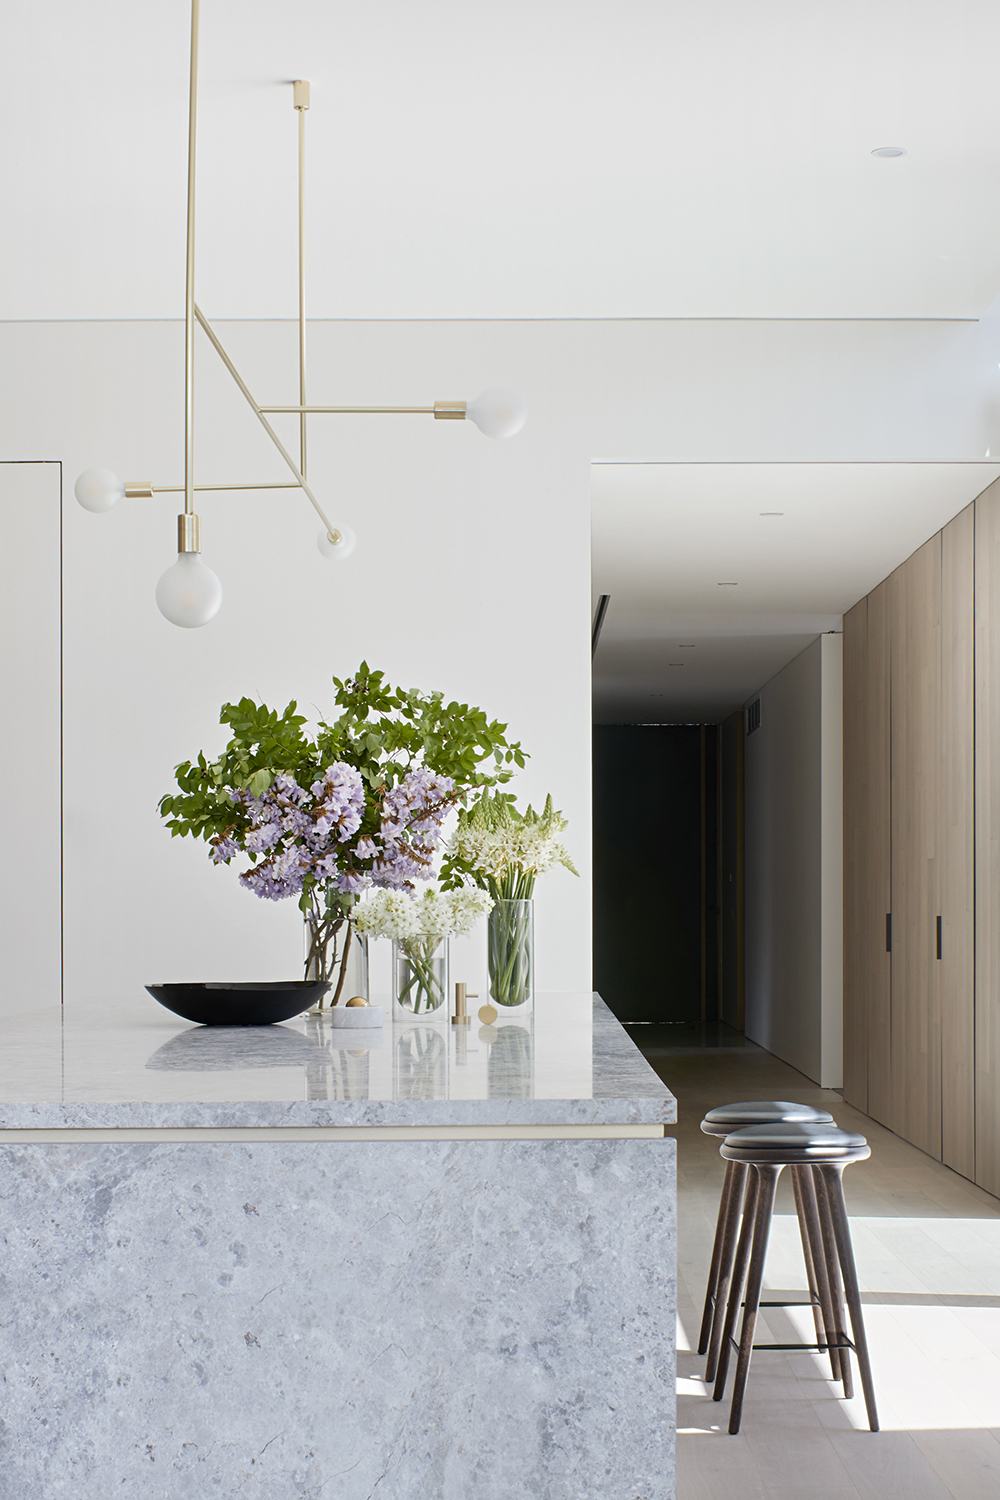 The Concrete Conceal House By Tecture Local Australian Interior Design & Residential Architecture Caulfield, Melbourne Image 12